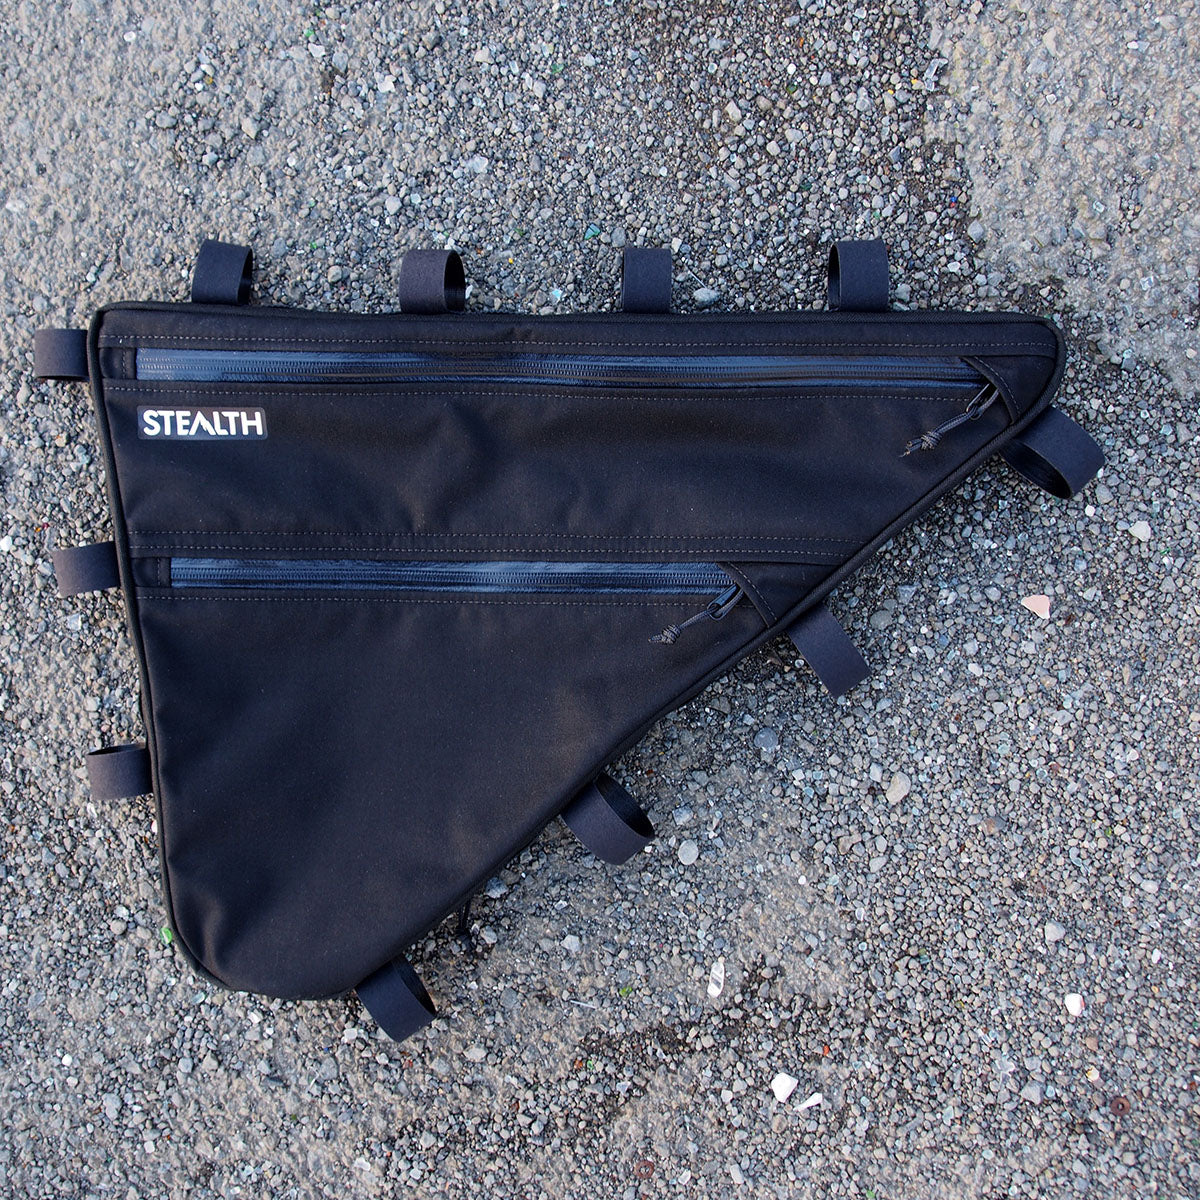 Custom frame bag for touring bike